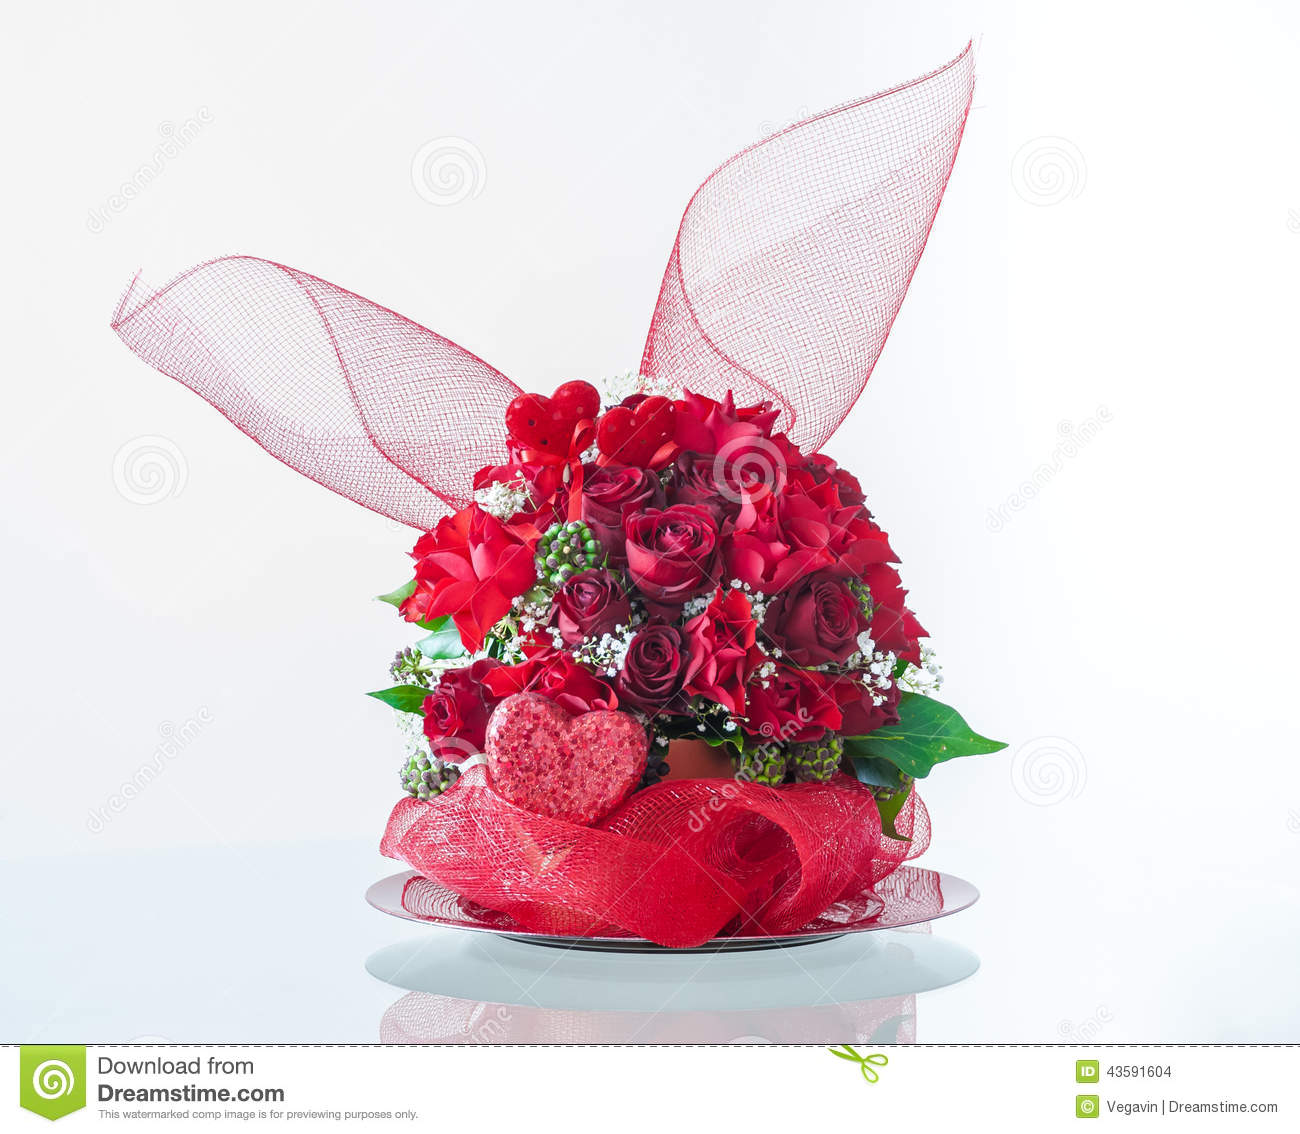 Composition florale en saint valentin photo stock image 43591604 for Comcomposition florale saint valentin